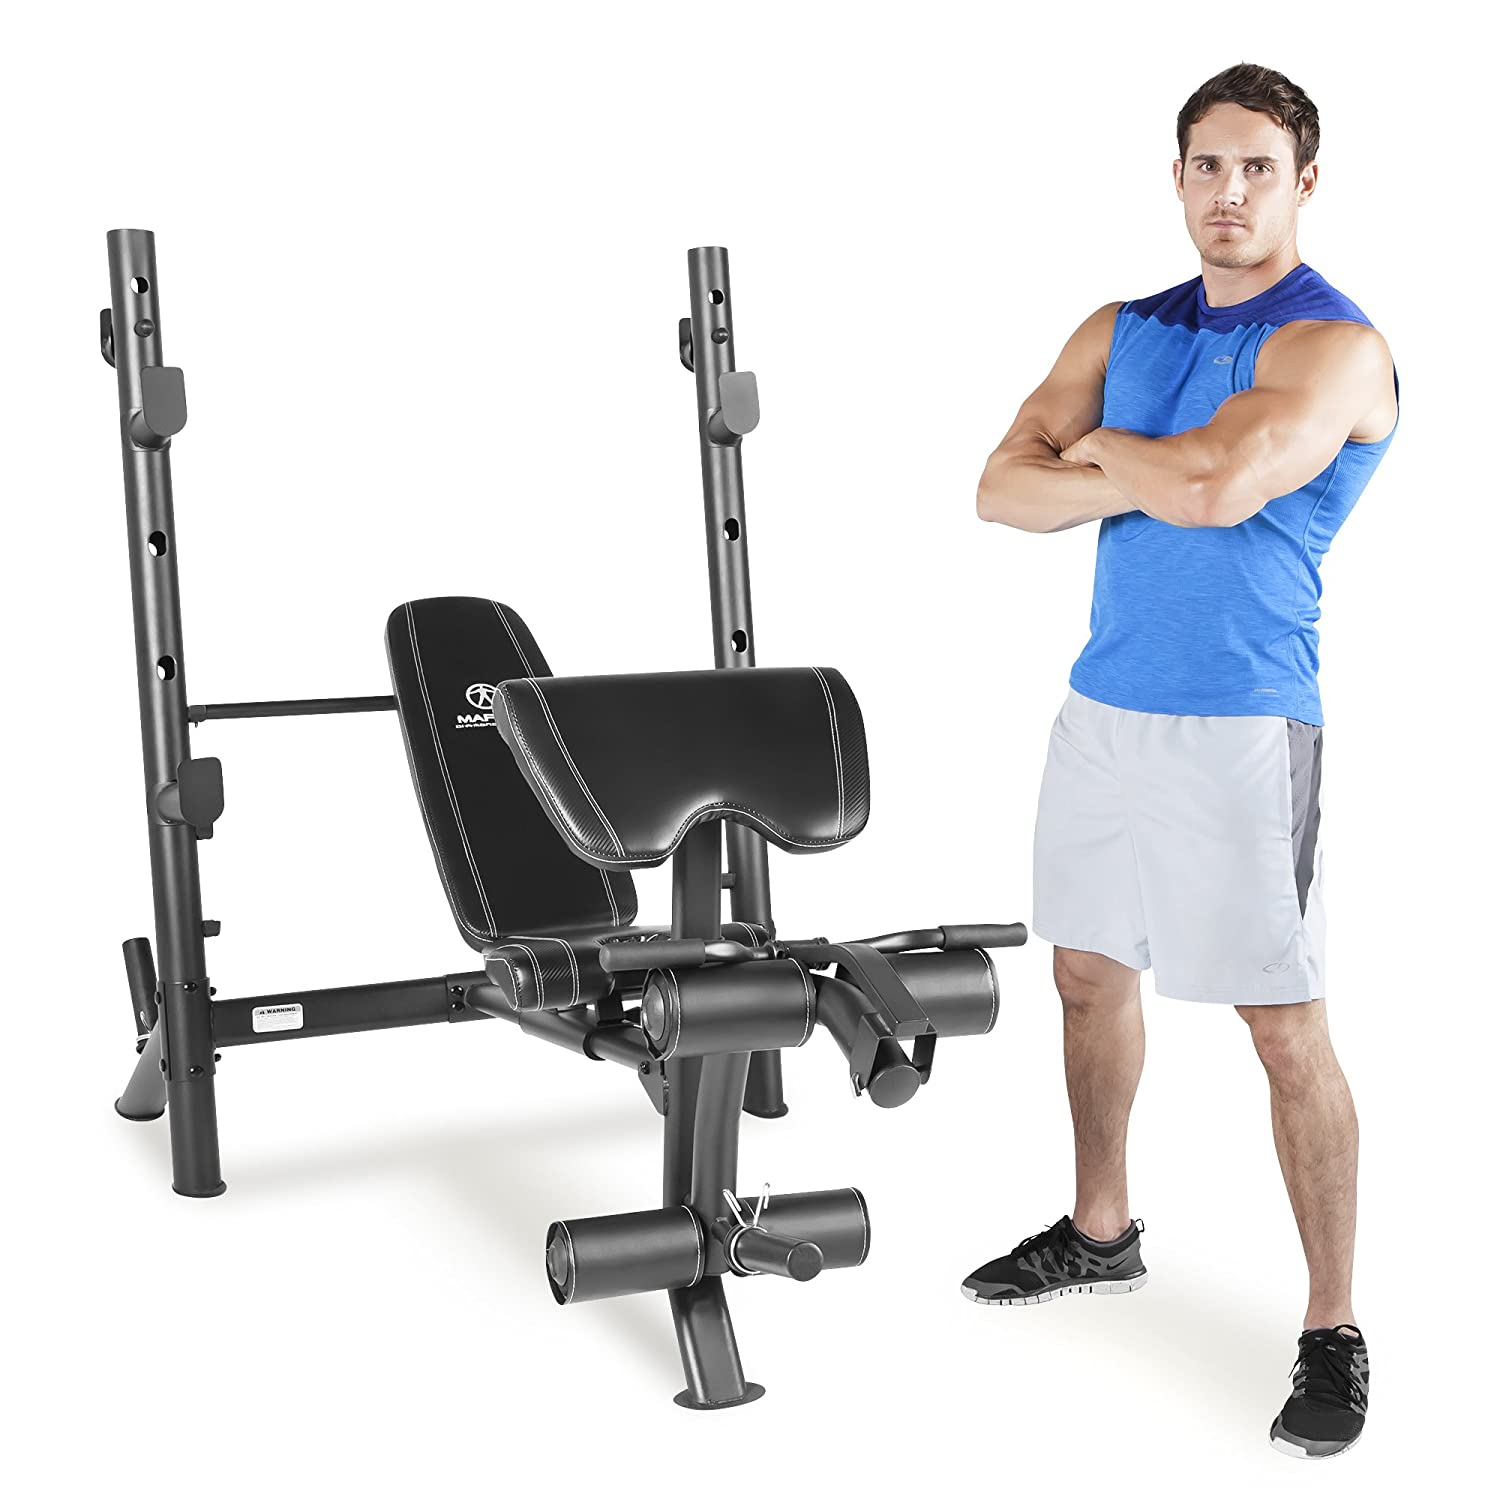 Best bench press reviews benefits and technique